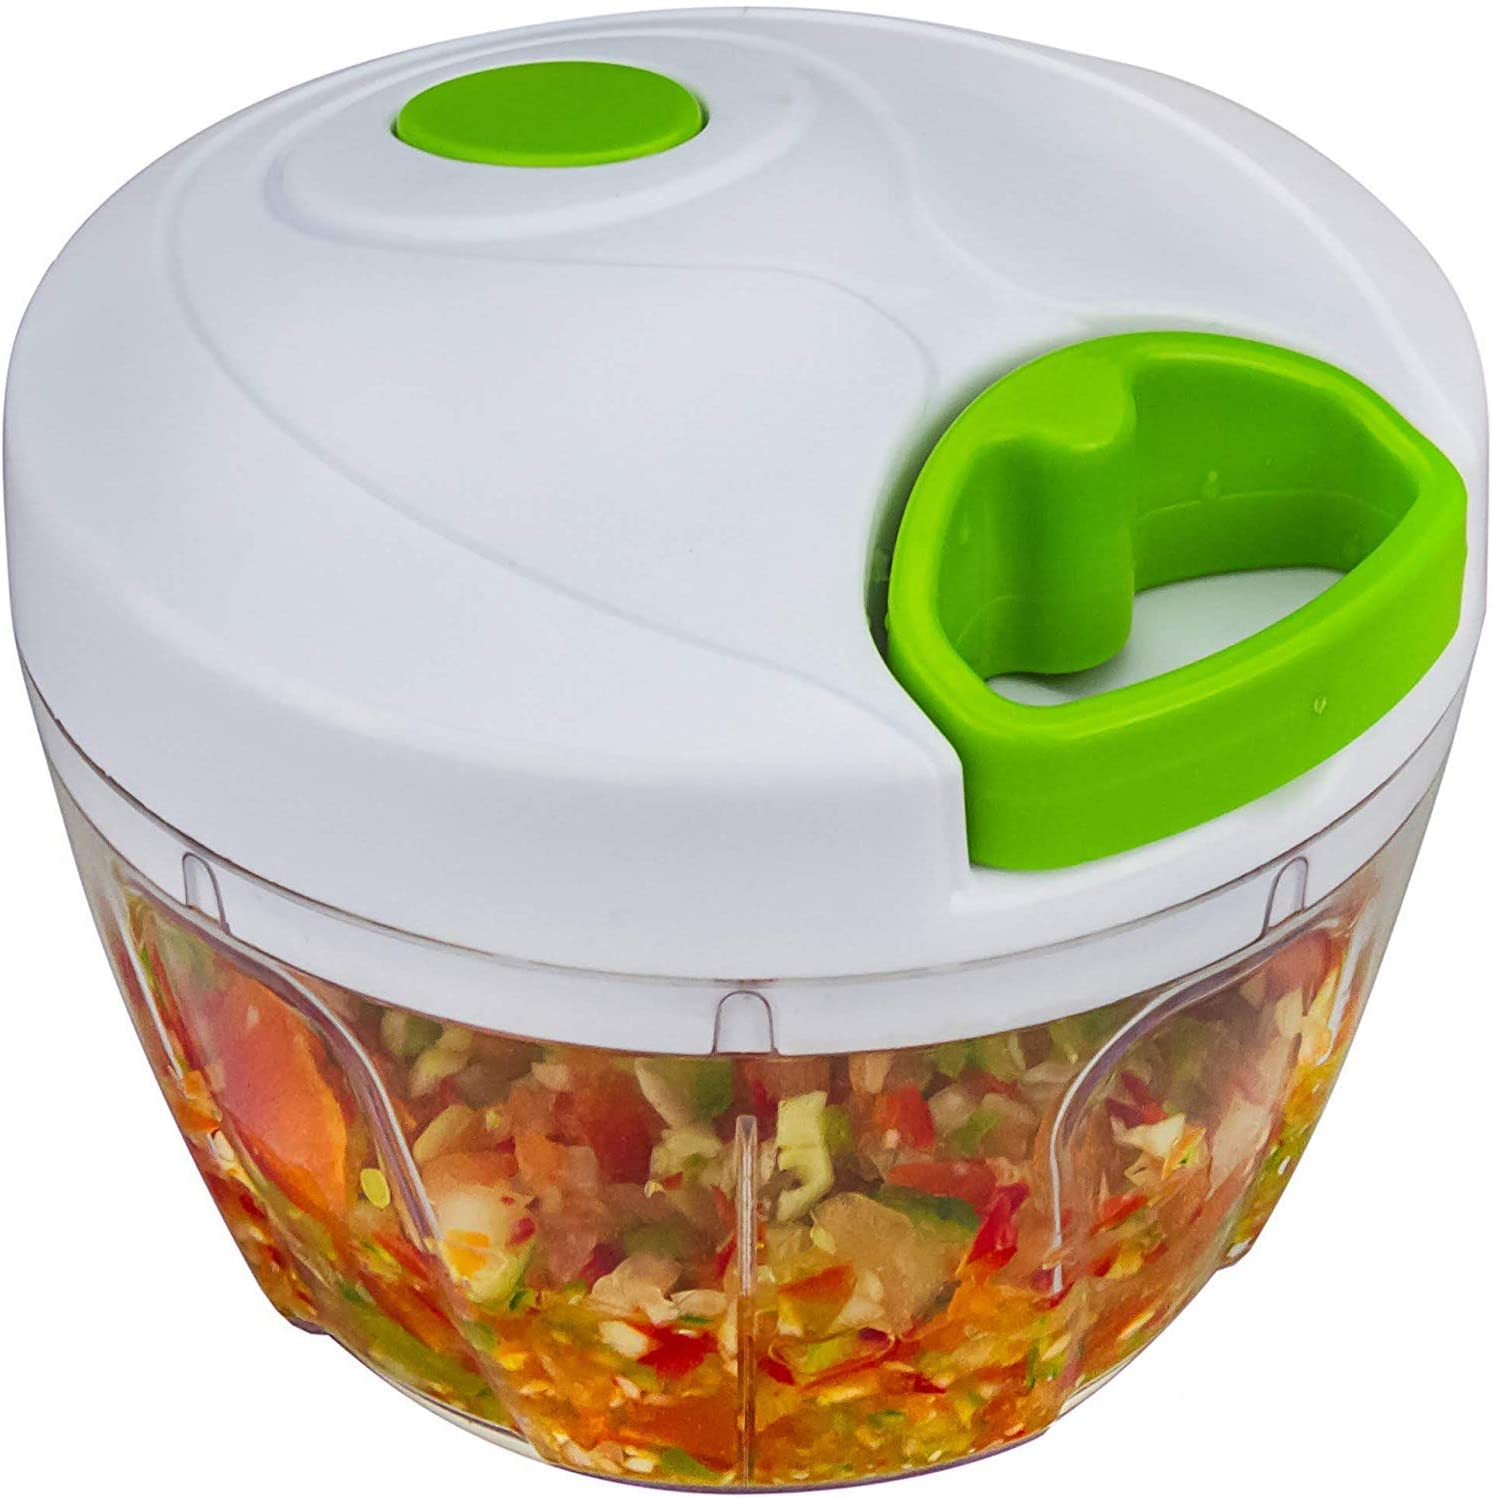 Shivaji Easy Pull Smart Plastic Chopper Vegetable Cutter and Food Processor